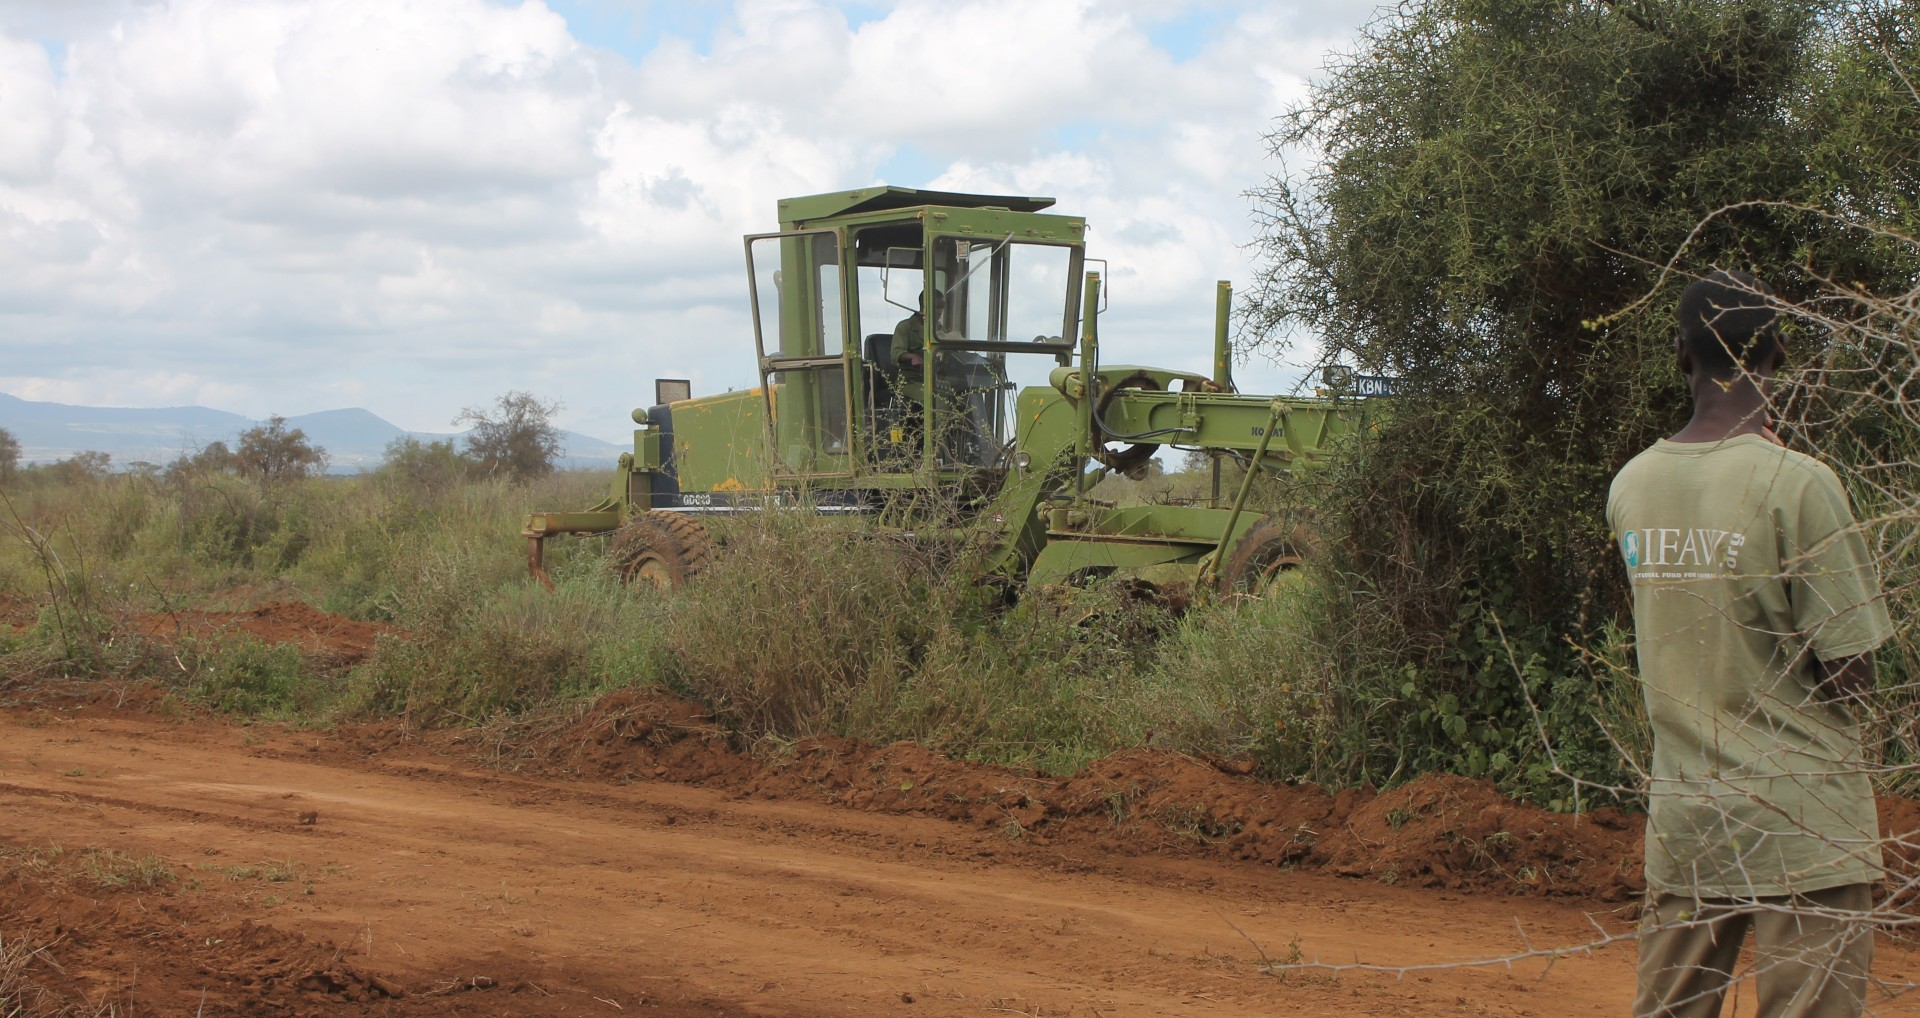 Developing a community access road in Amboseli